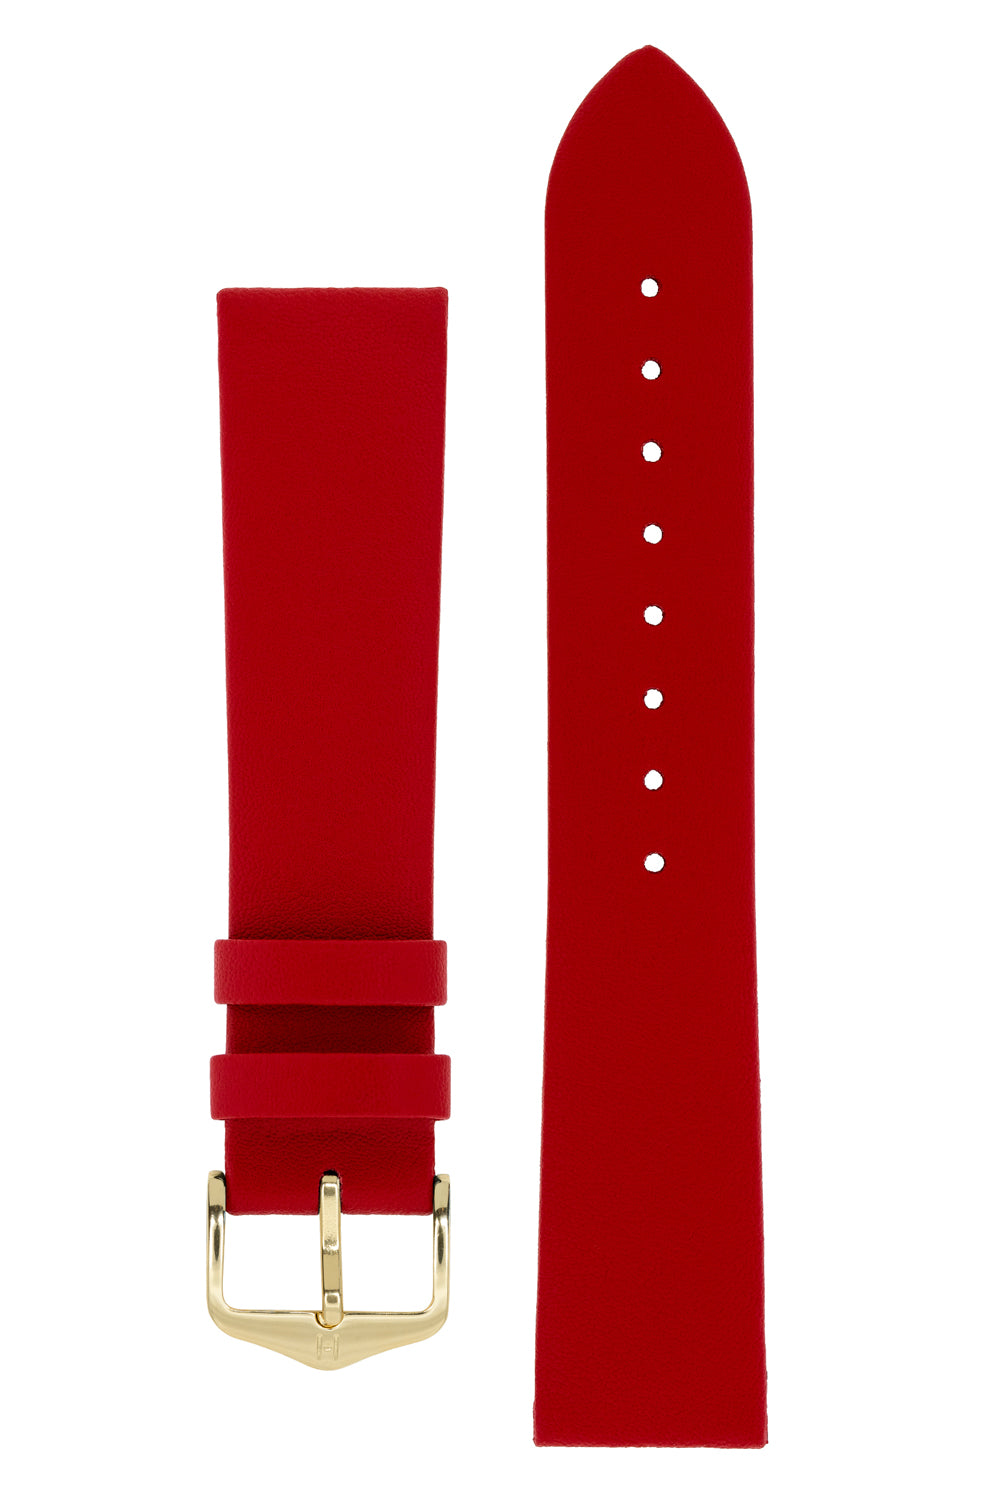 Hirsch DIAMOND CALF Leather Watch Strap in RED